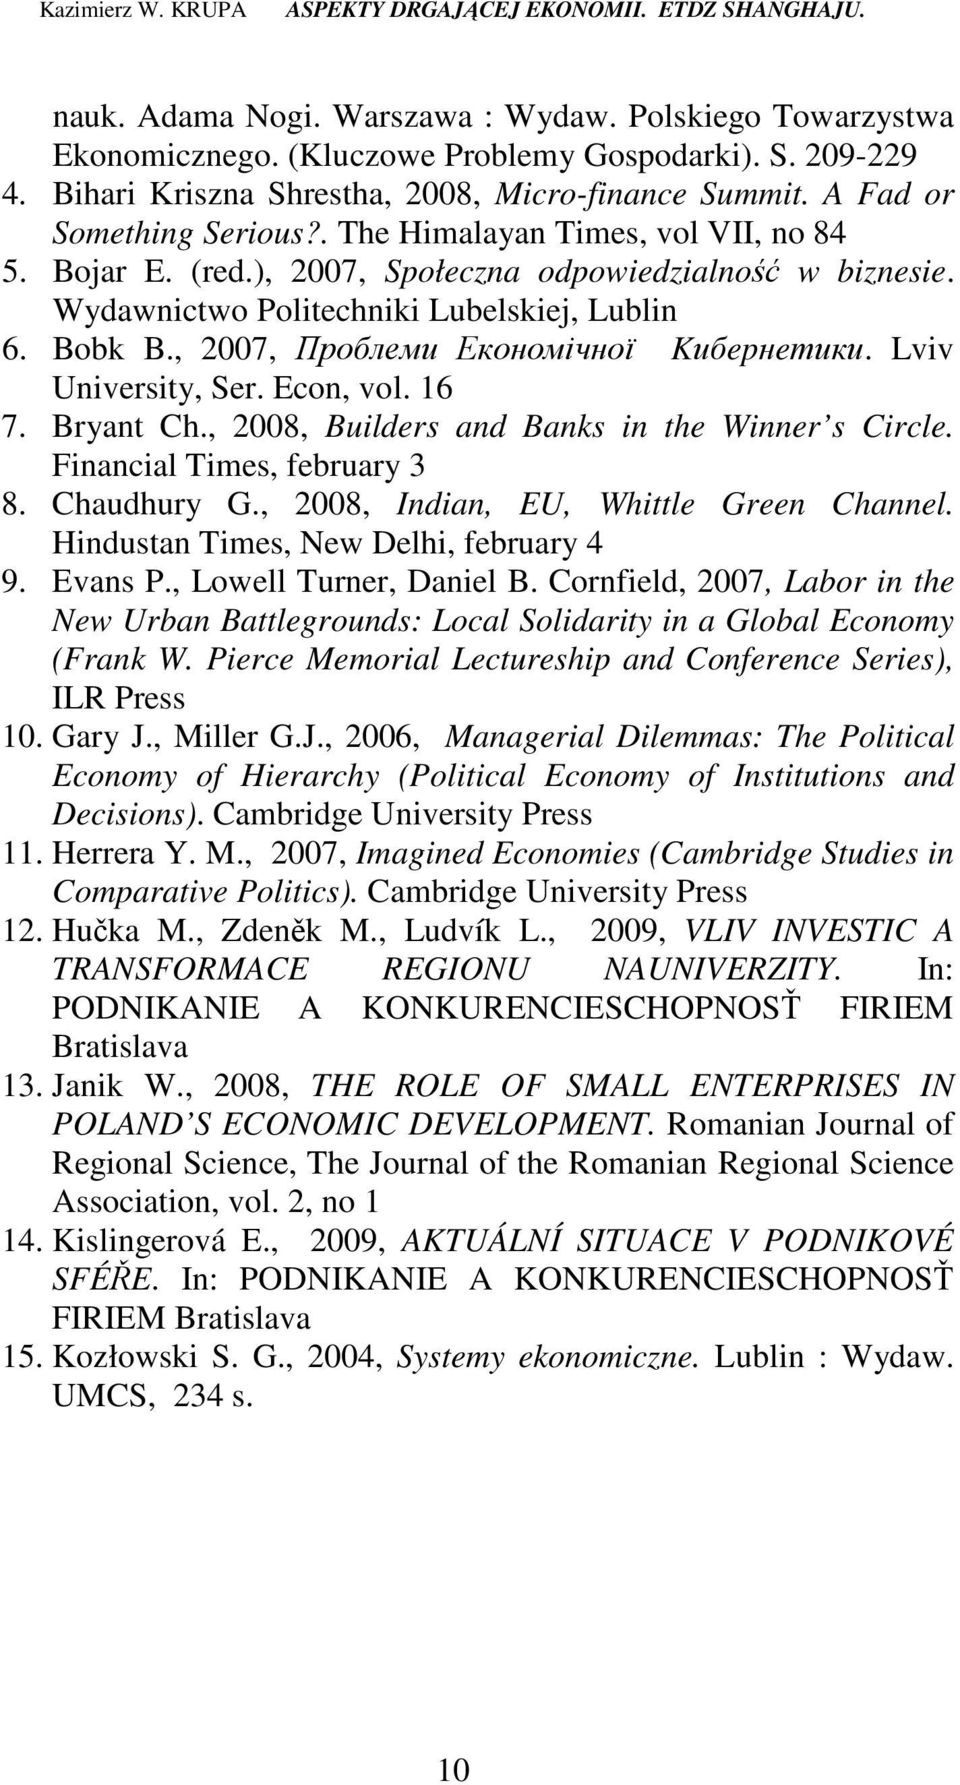 Lviv University, Ser. Econ, vol. 16 7. Bryant Ch., 2008, Builders and Banks in the Winner s Circle. Financial Times, february 3 8. Chaudhury G., 2008, Indian, EU, Whittle Green Channel.